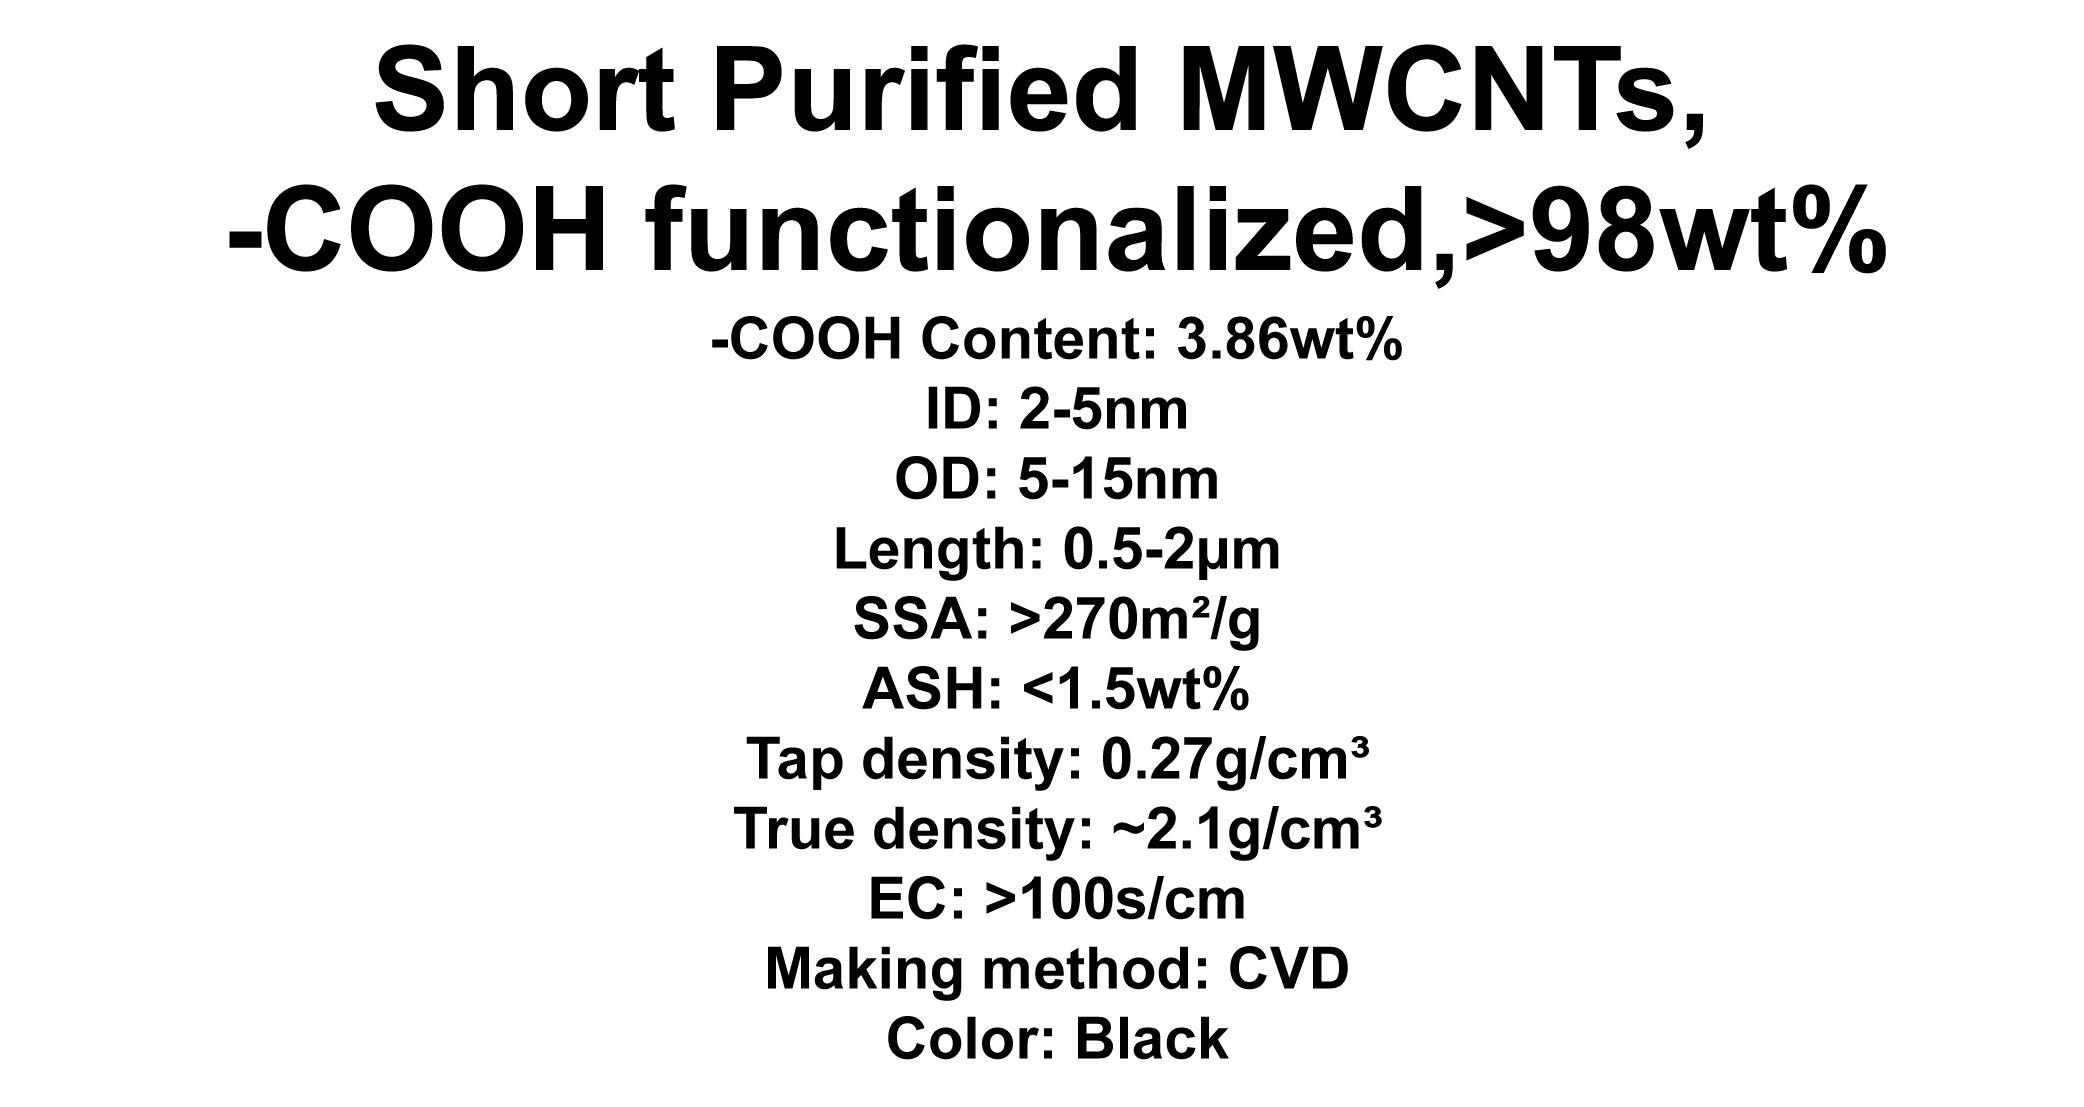 Short Purified MWCNTs, -COOH functionalized (TNSMC1)